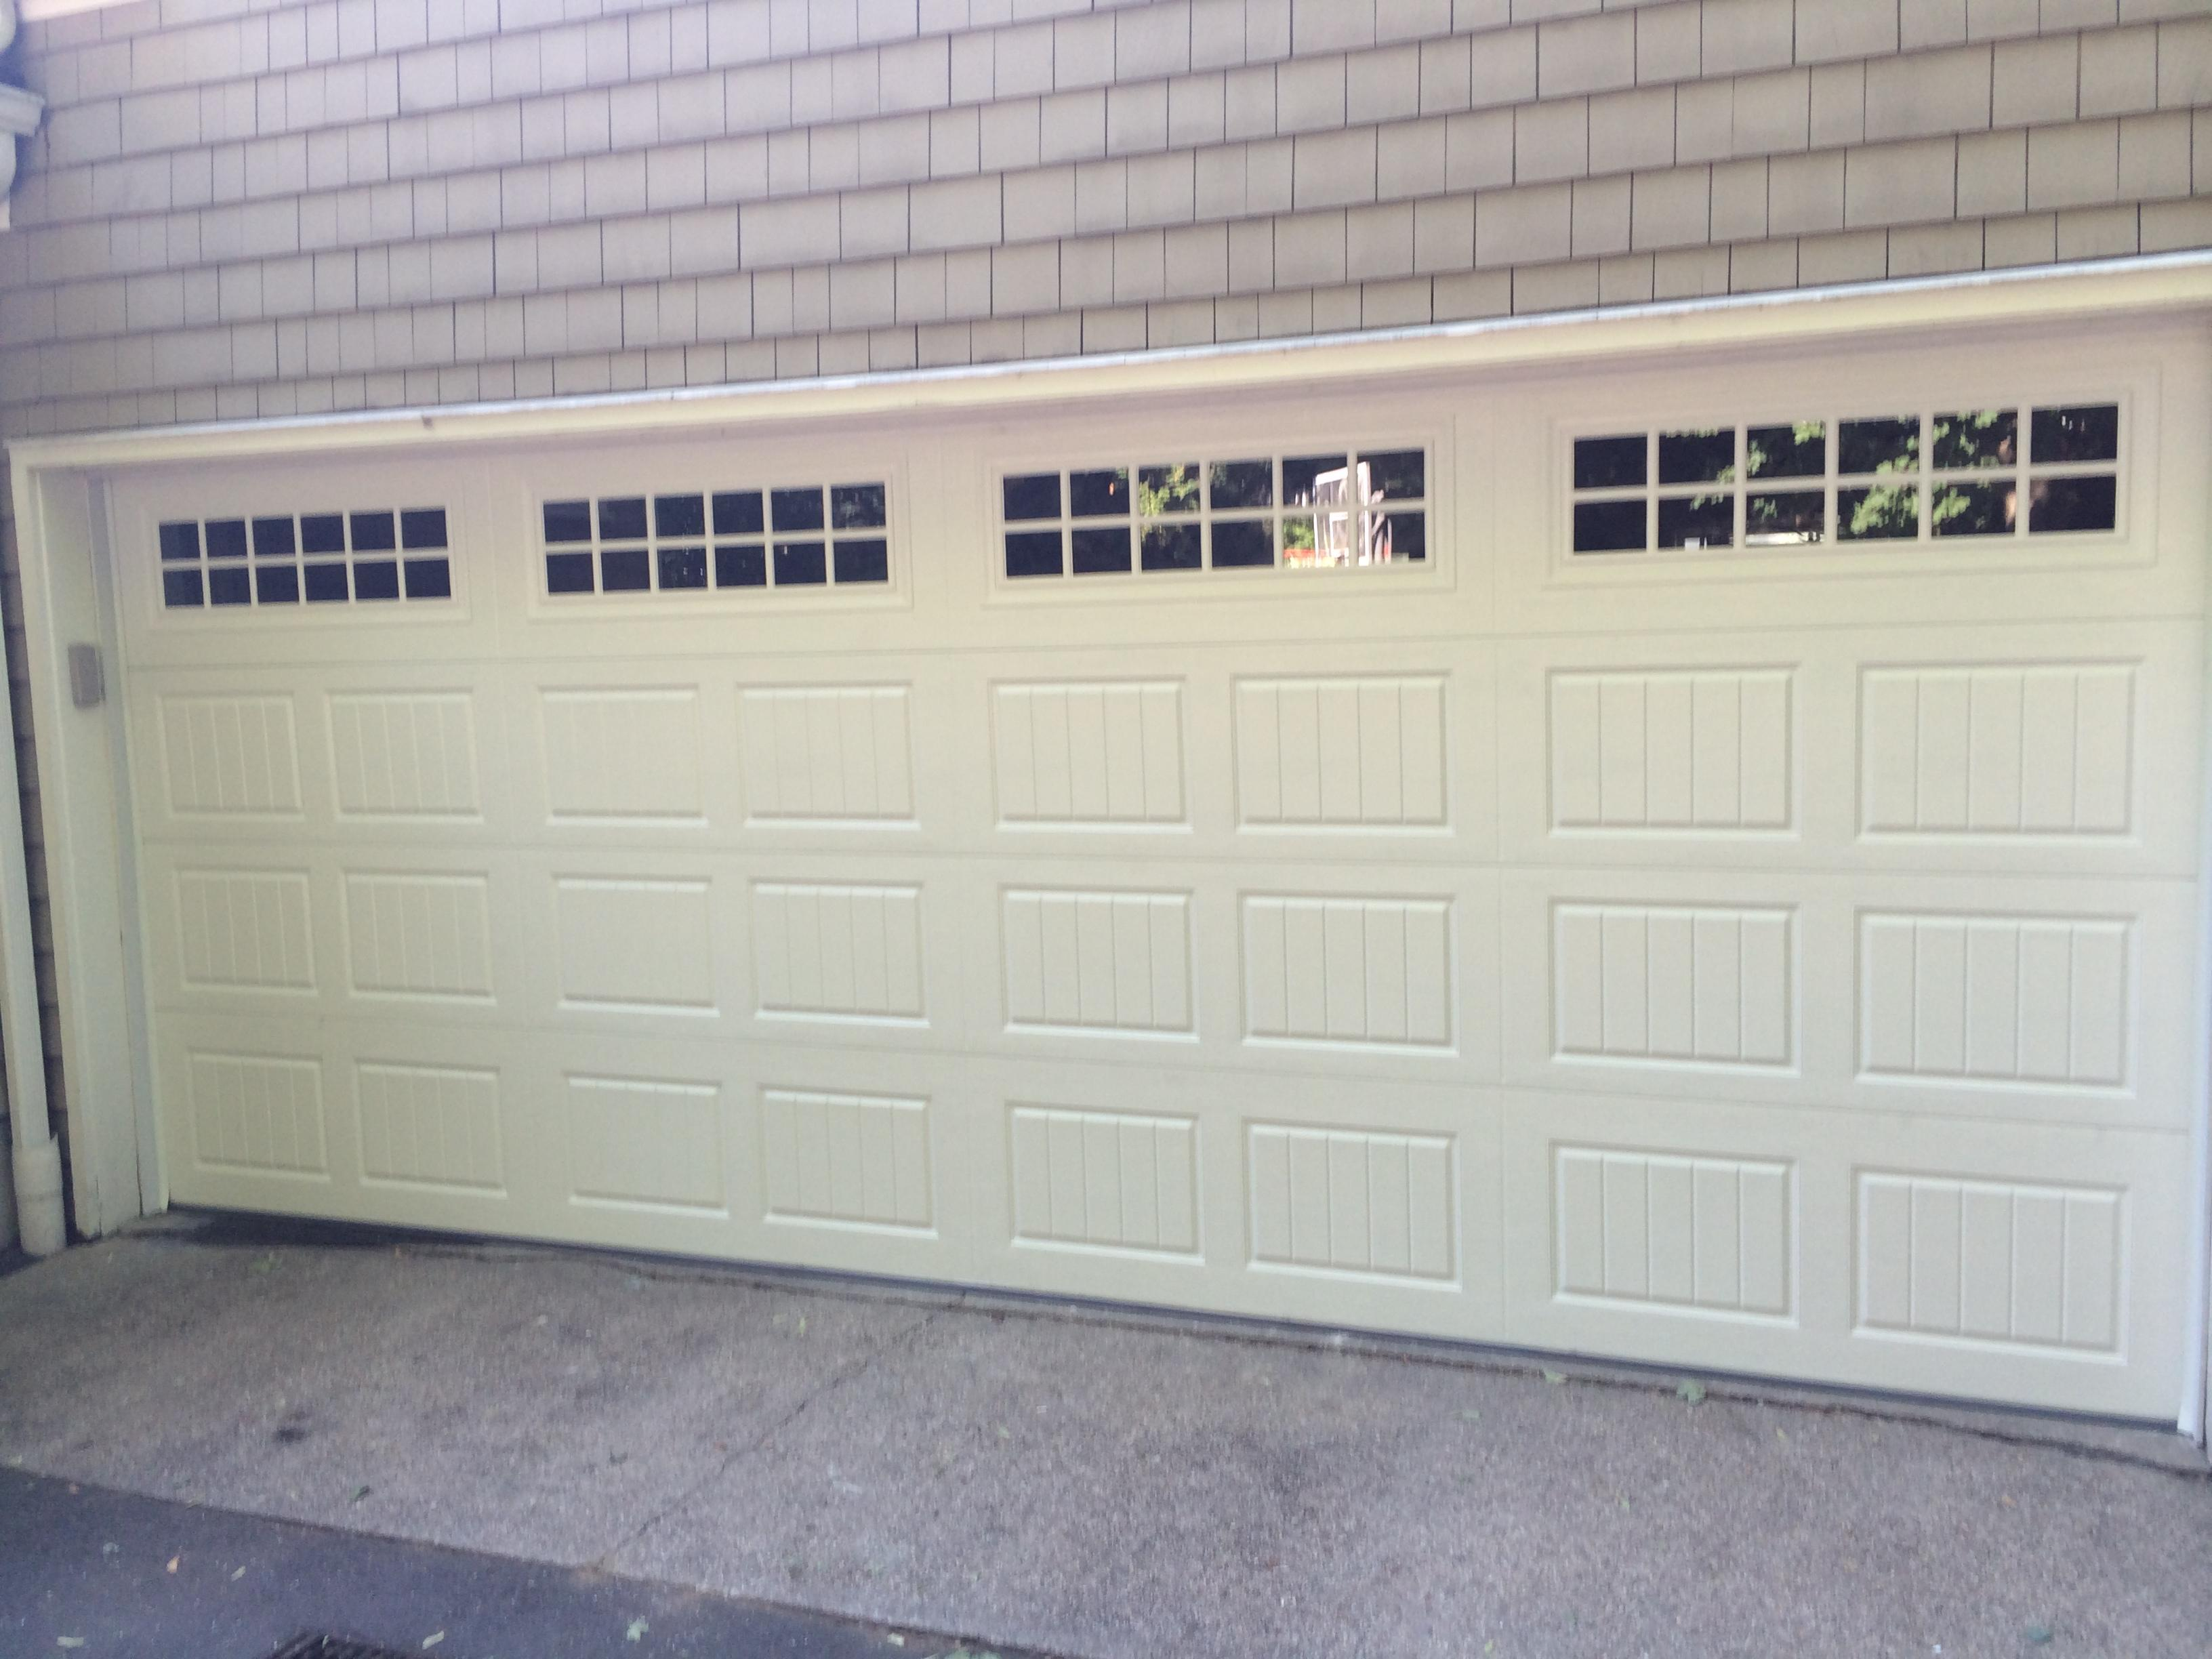 2448 #303344 Overhead Doors Solutions In West Haven CT 06516 ChamberofCommerce  image Overhead Garage Doors Residential Reviews 37133264